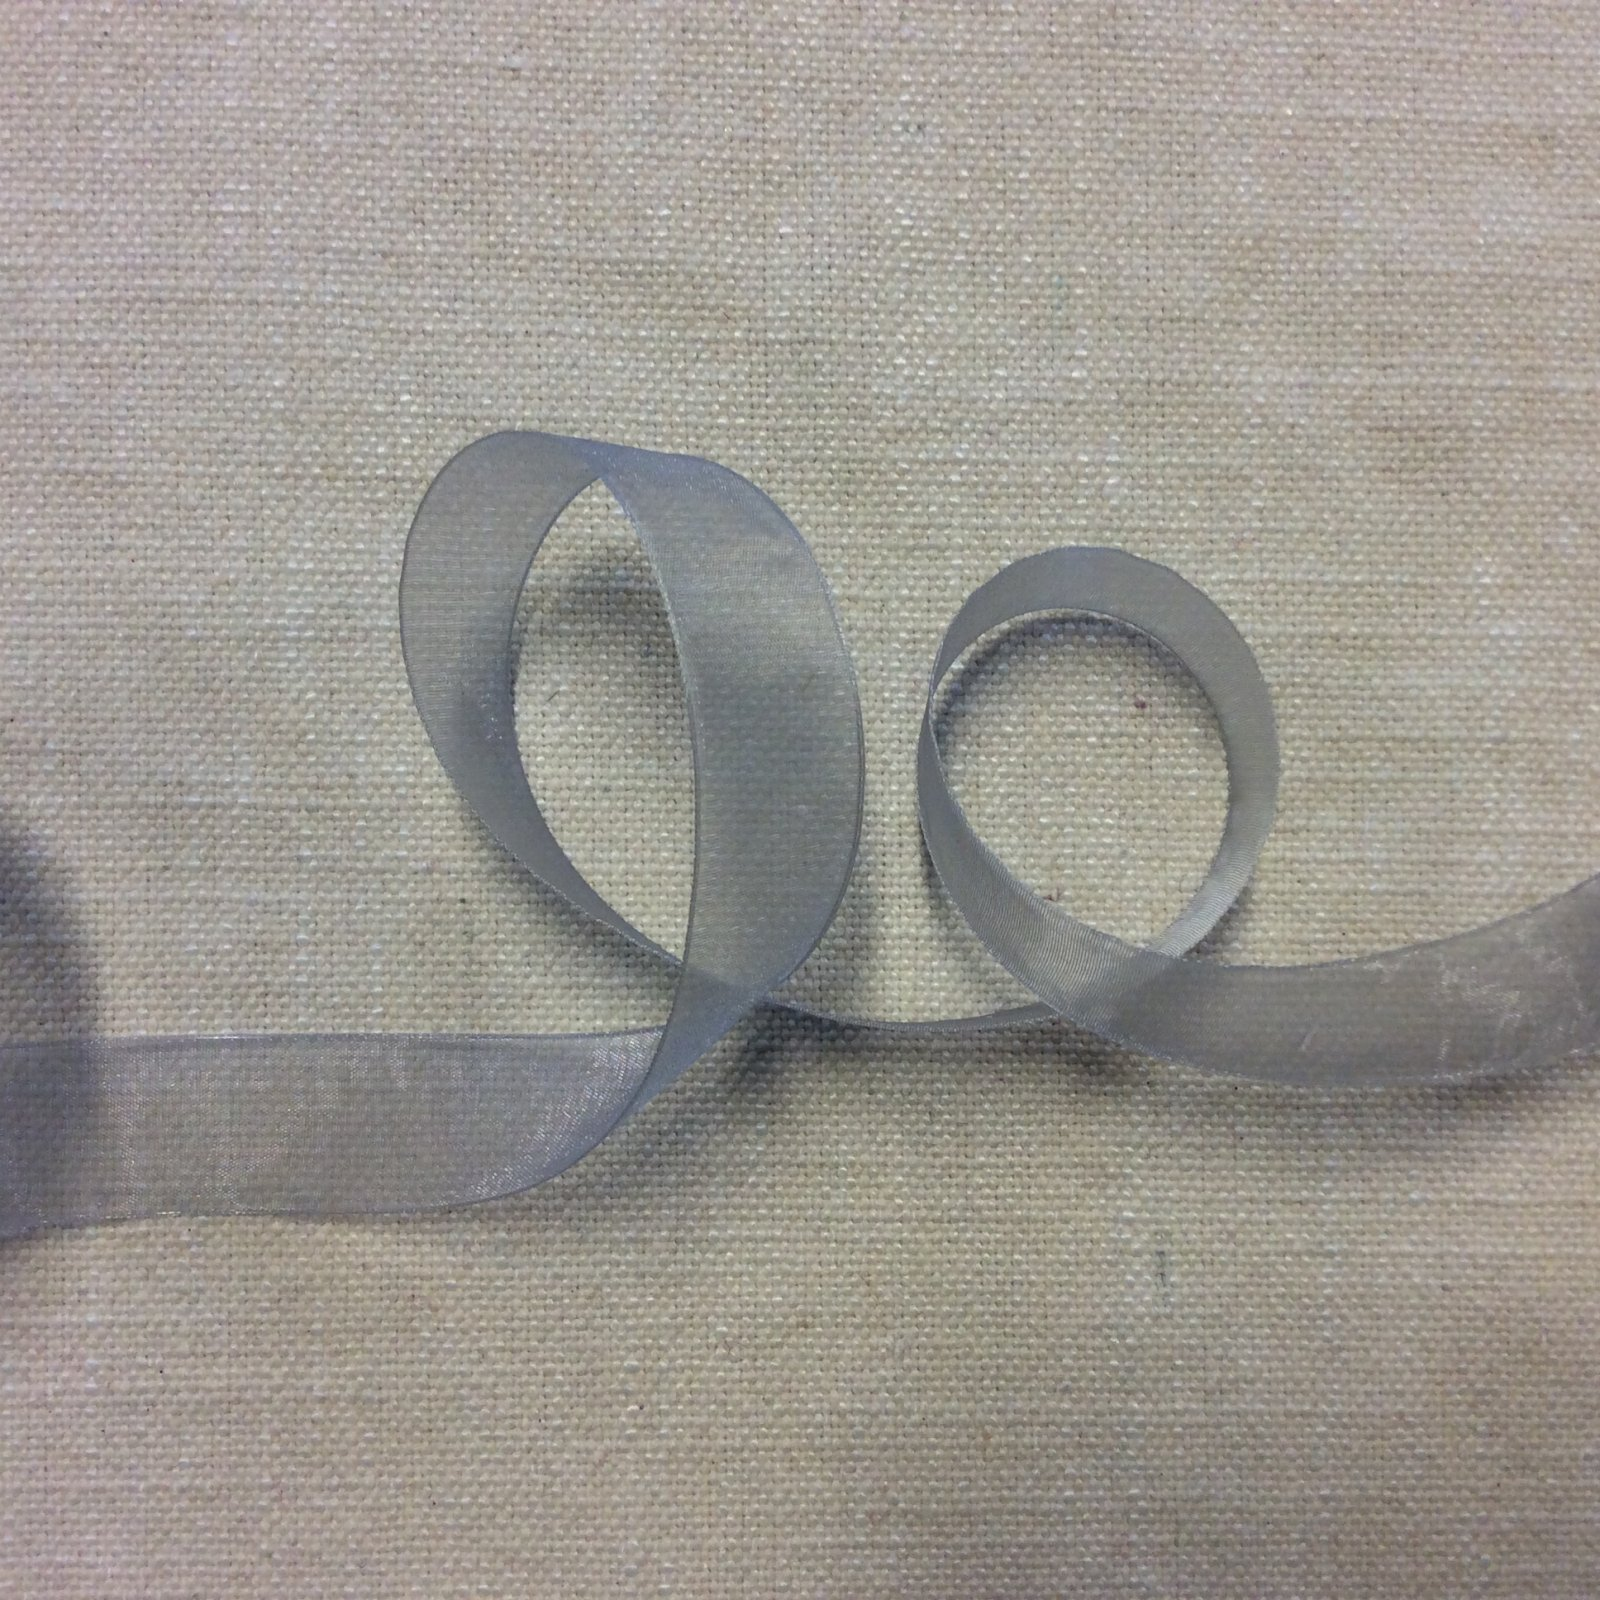 Organza Ribbon 7/8 Soft Gray Trim Ribbon RIB1185